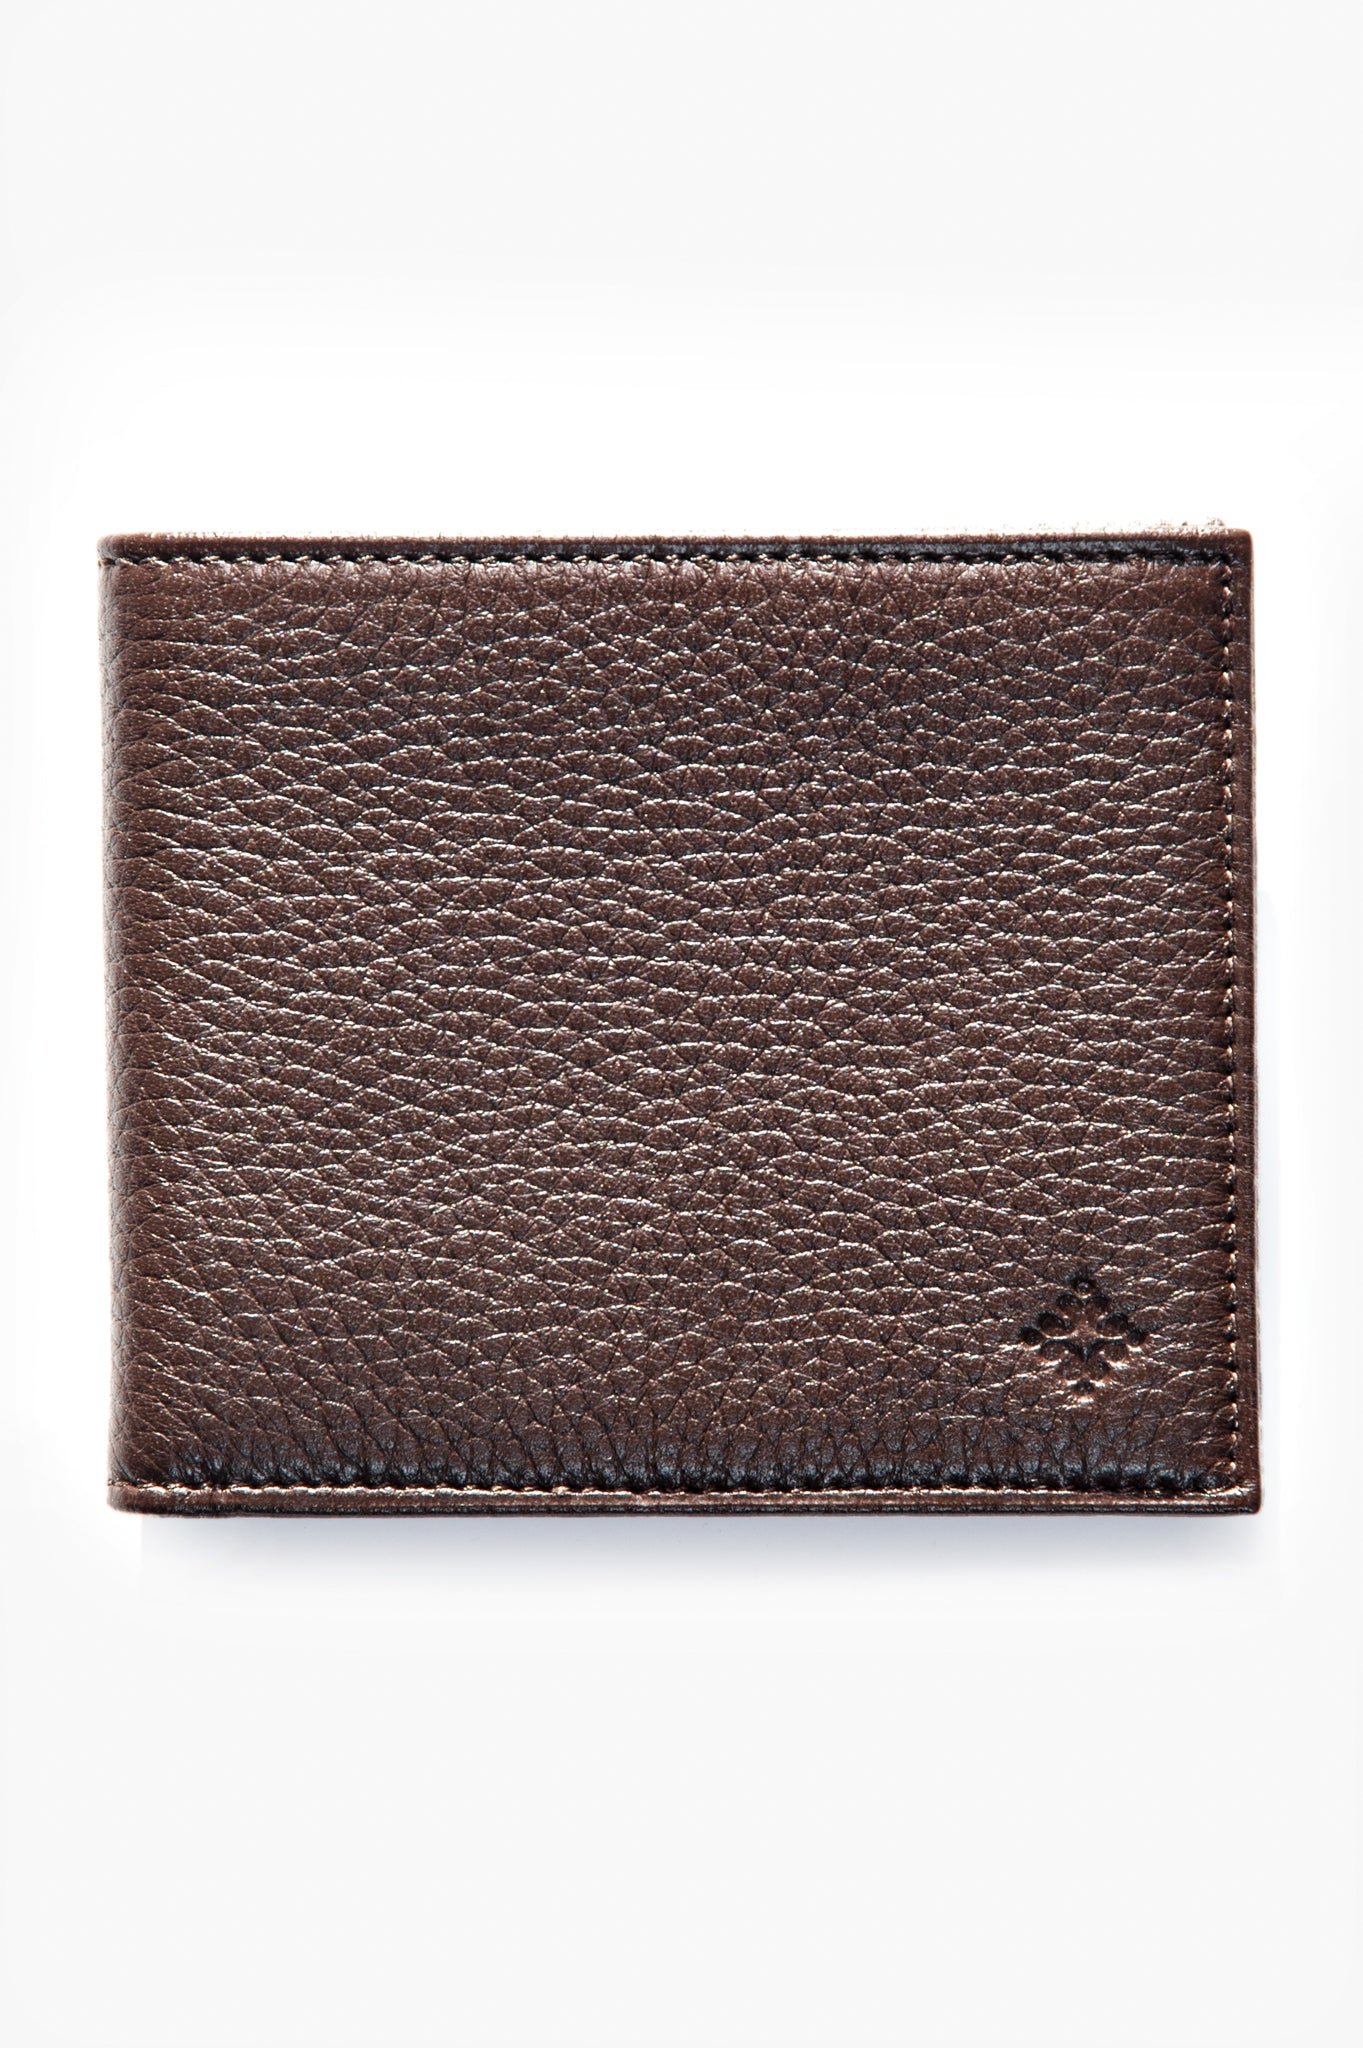 Benjamin 100% Deerskin Leather horizontal wallet (dark brown)